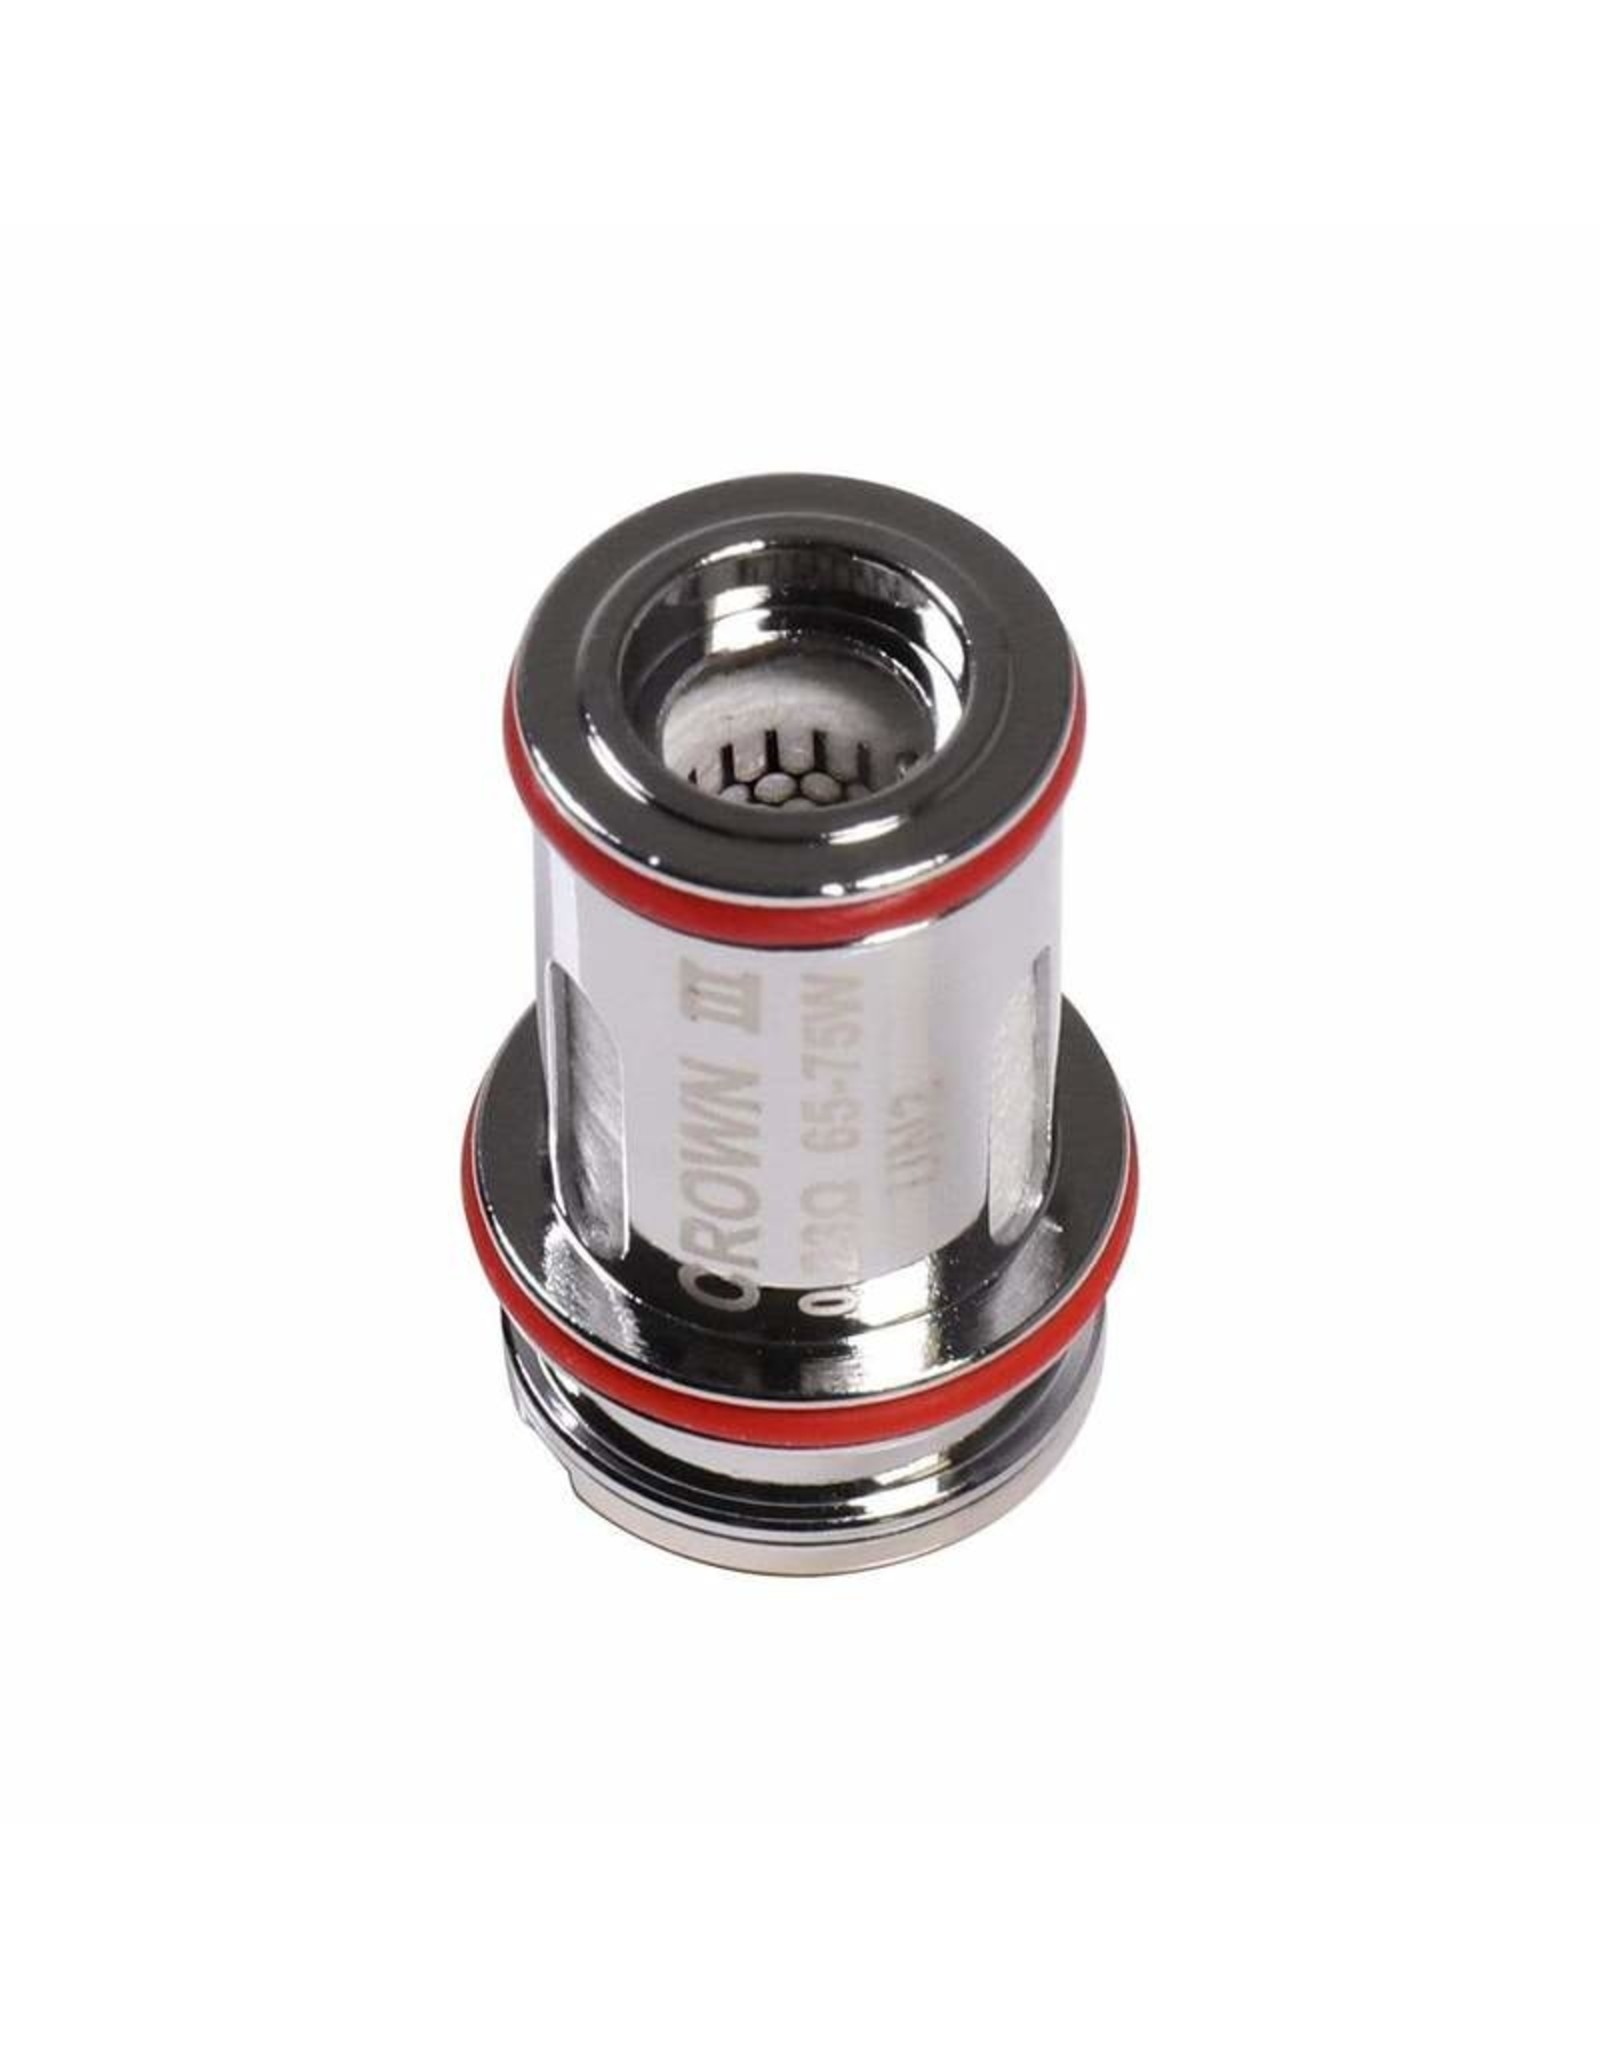 Uwell Uwell Crown 3 Replacement Coils (Single) 0.25ohm